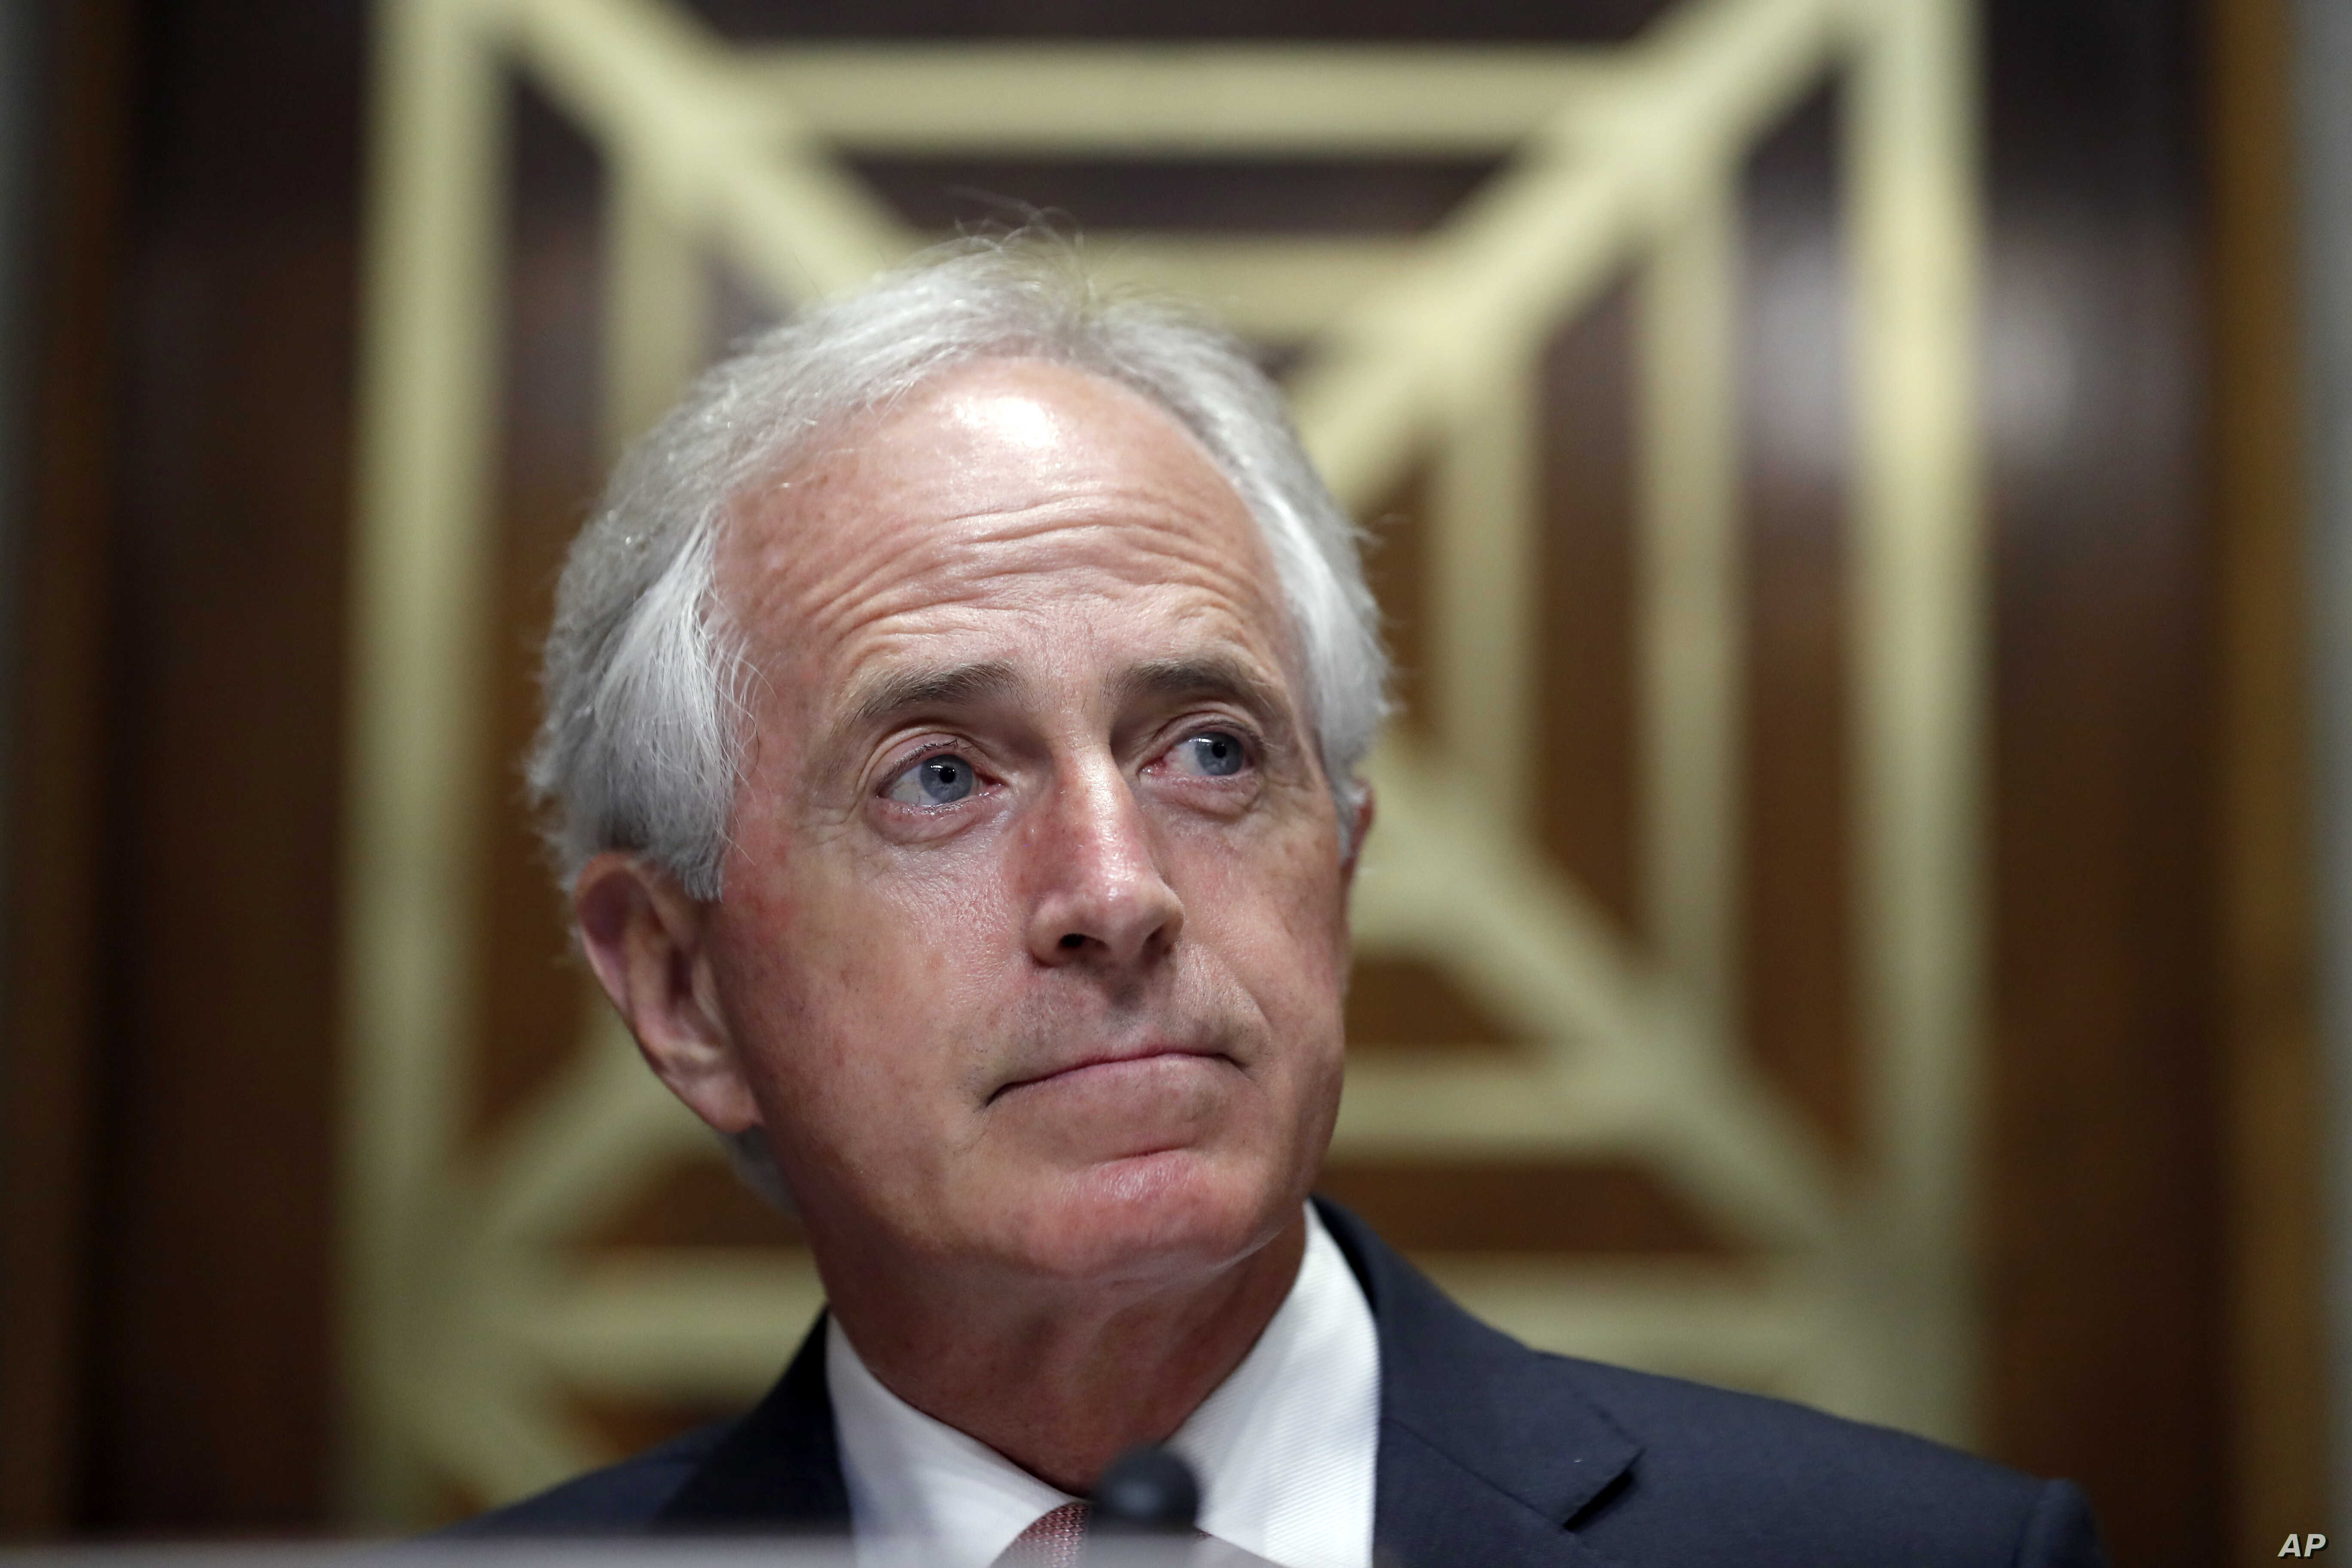 Chairman Bob Corker, R-Tenn., pauses before a hearing of the Senate Foreign Relations Committee on the nomination of former Utah Gov. Jon Huntsman to become the US ambassador to Russia, on Capitol Hill, Sept. 19, 2017 in Washington.